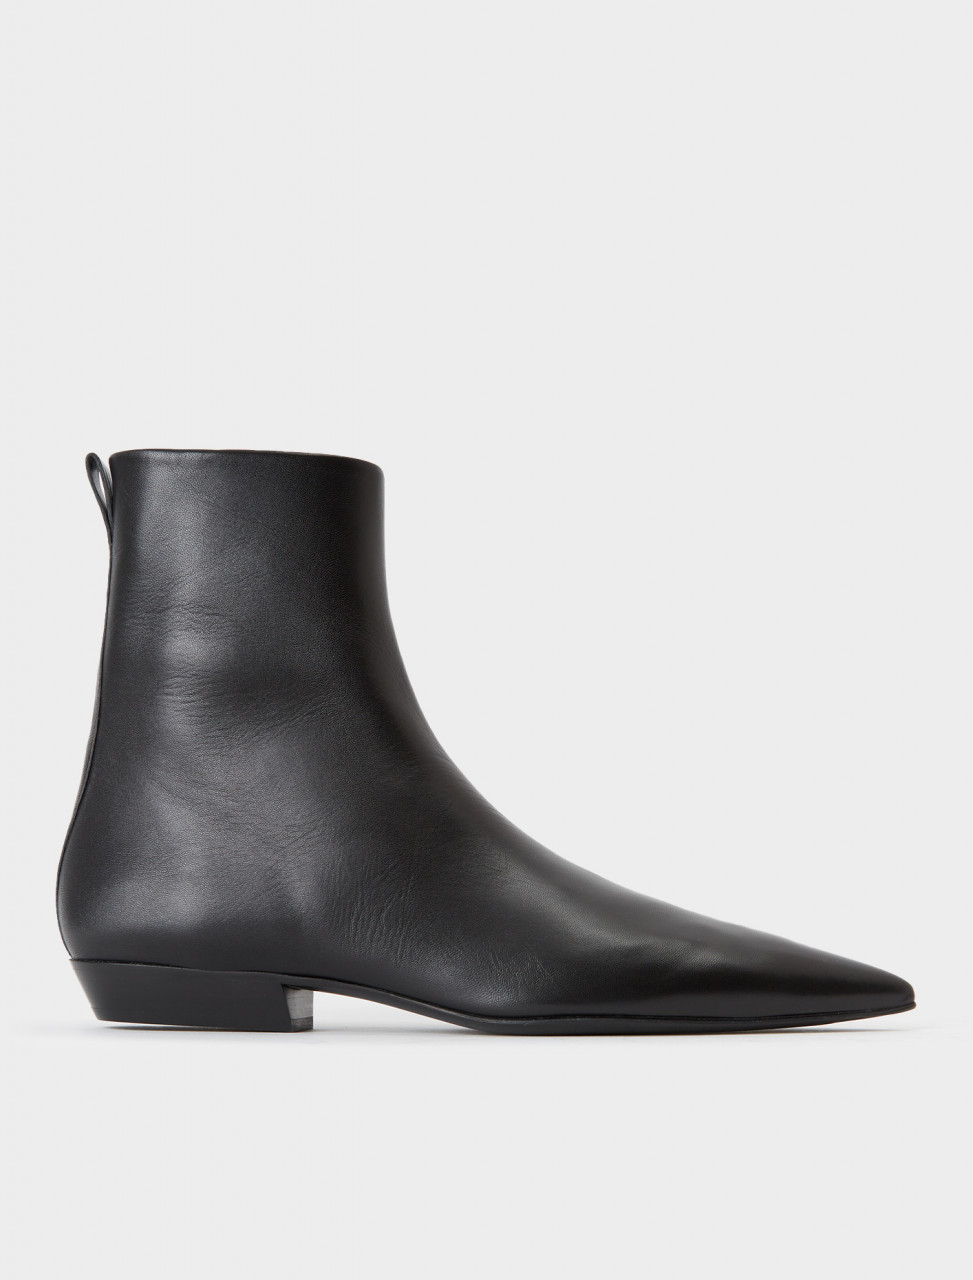 130-JS35022A-12010-001 JIL SANDER Pointed Toe Ankle Boot